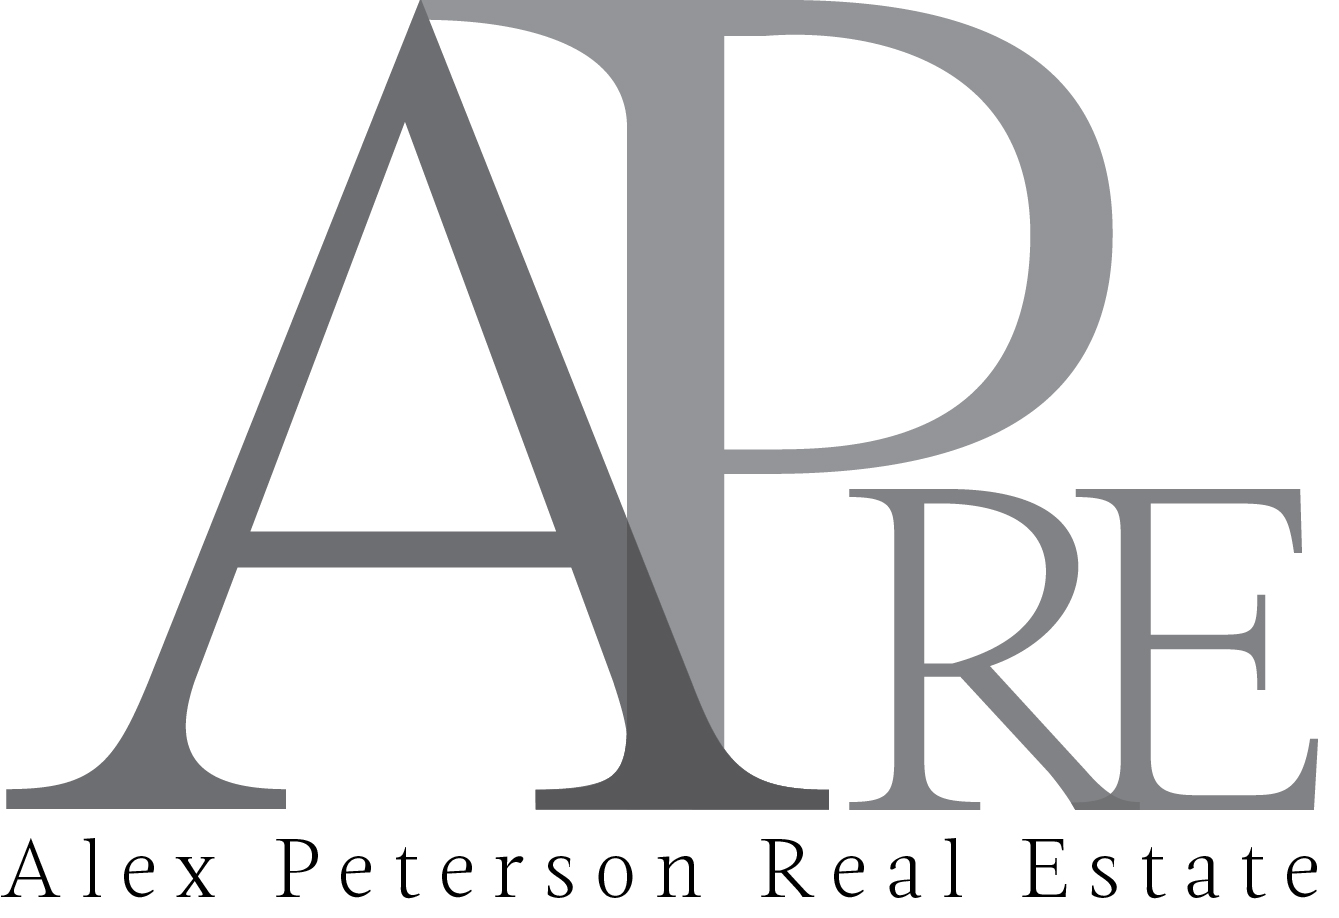 Alex Peterson Real Estate